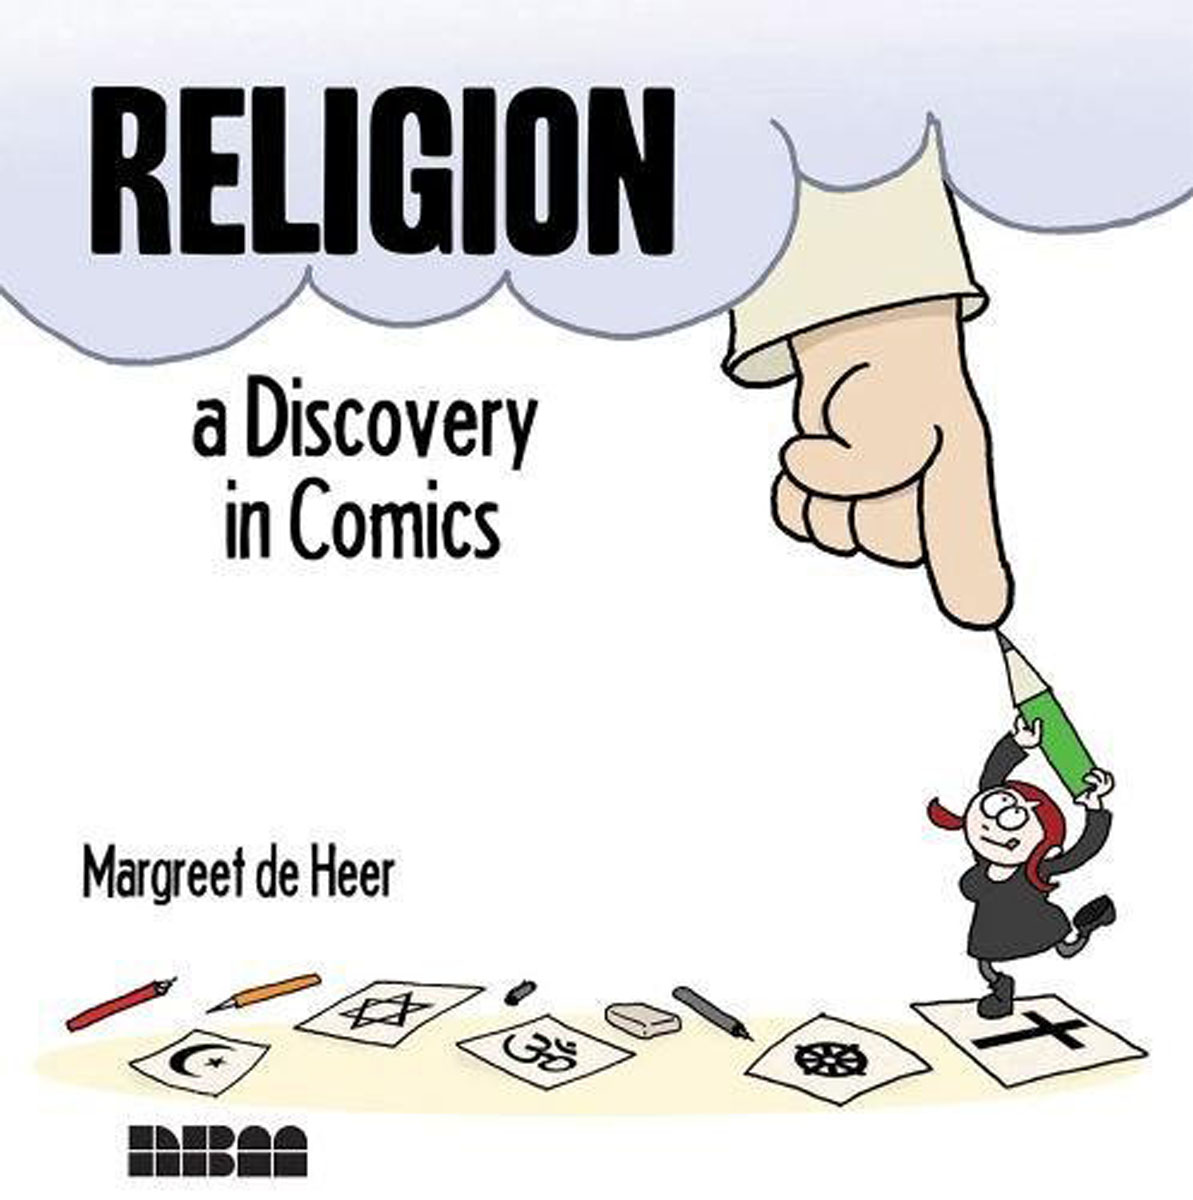 Religion among the believers